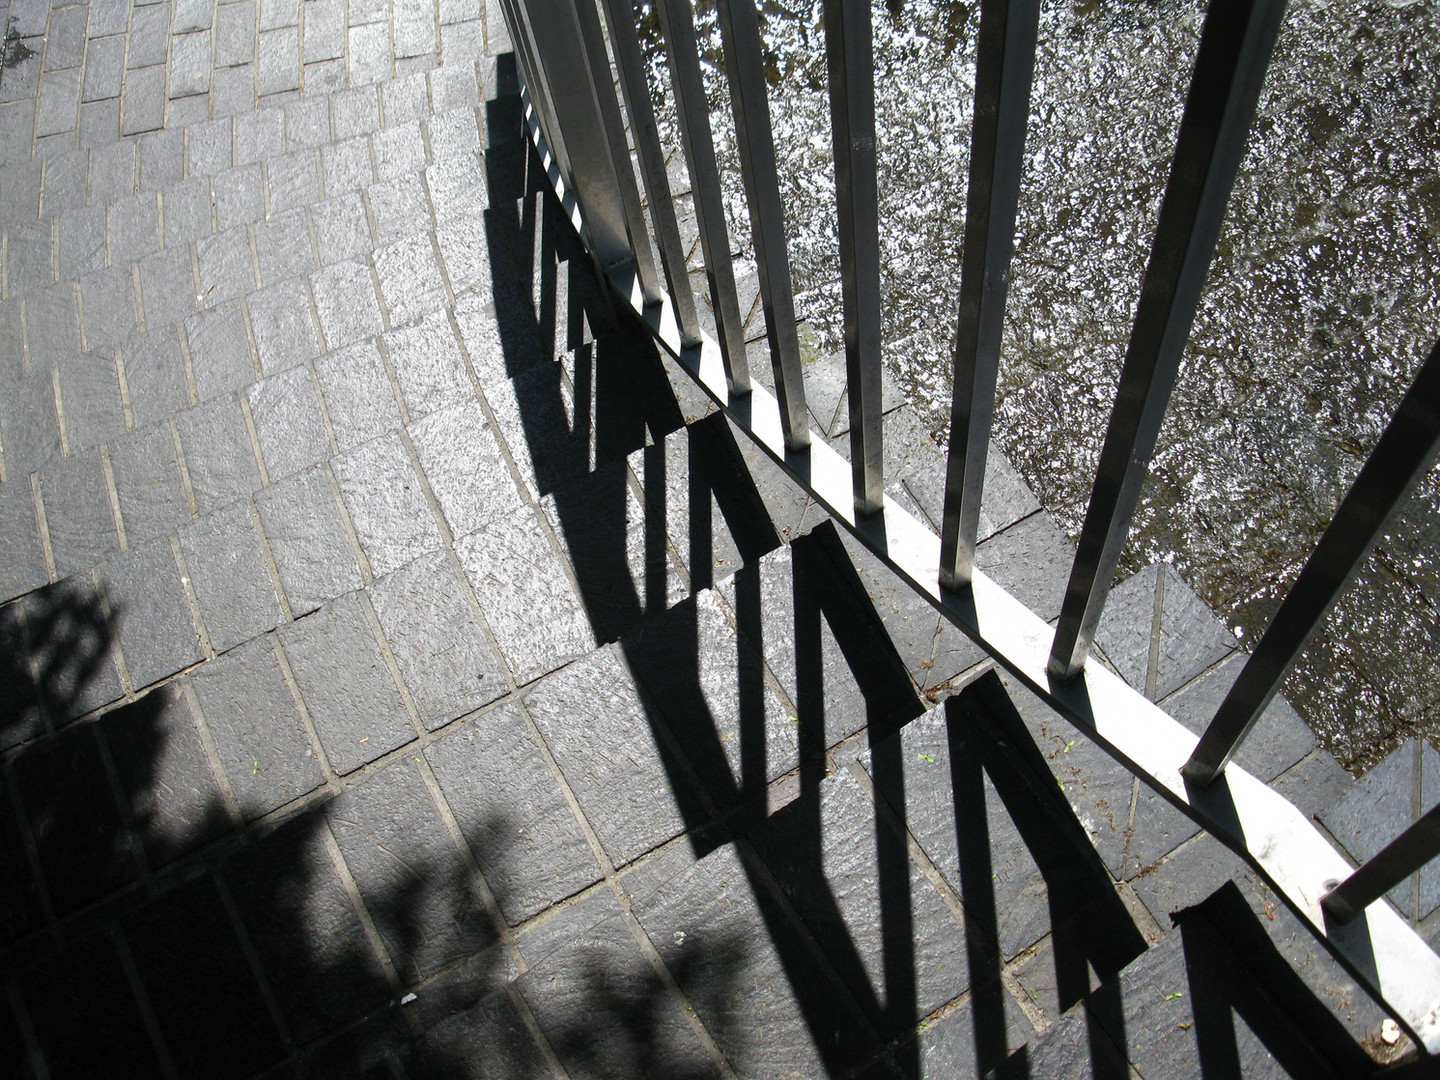 stairs and shadows image